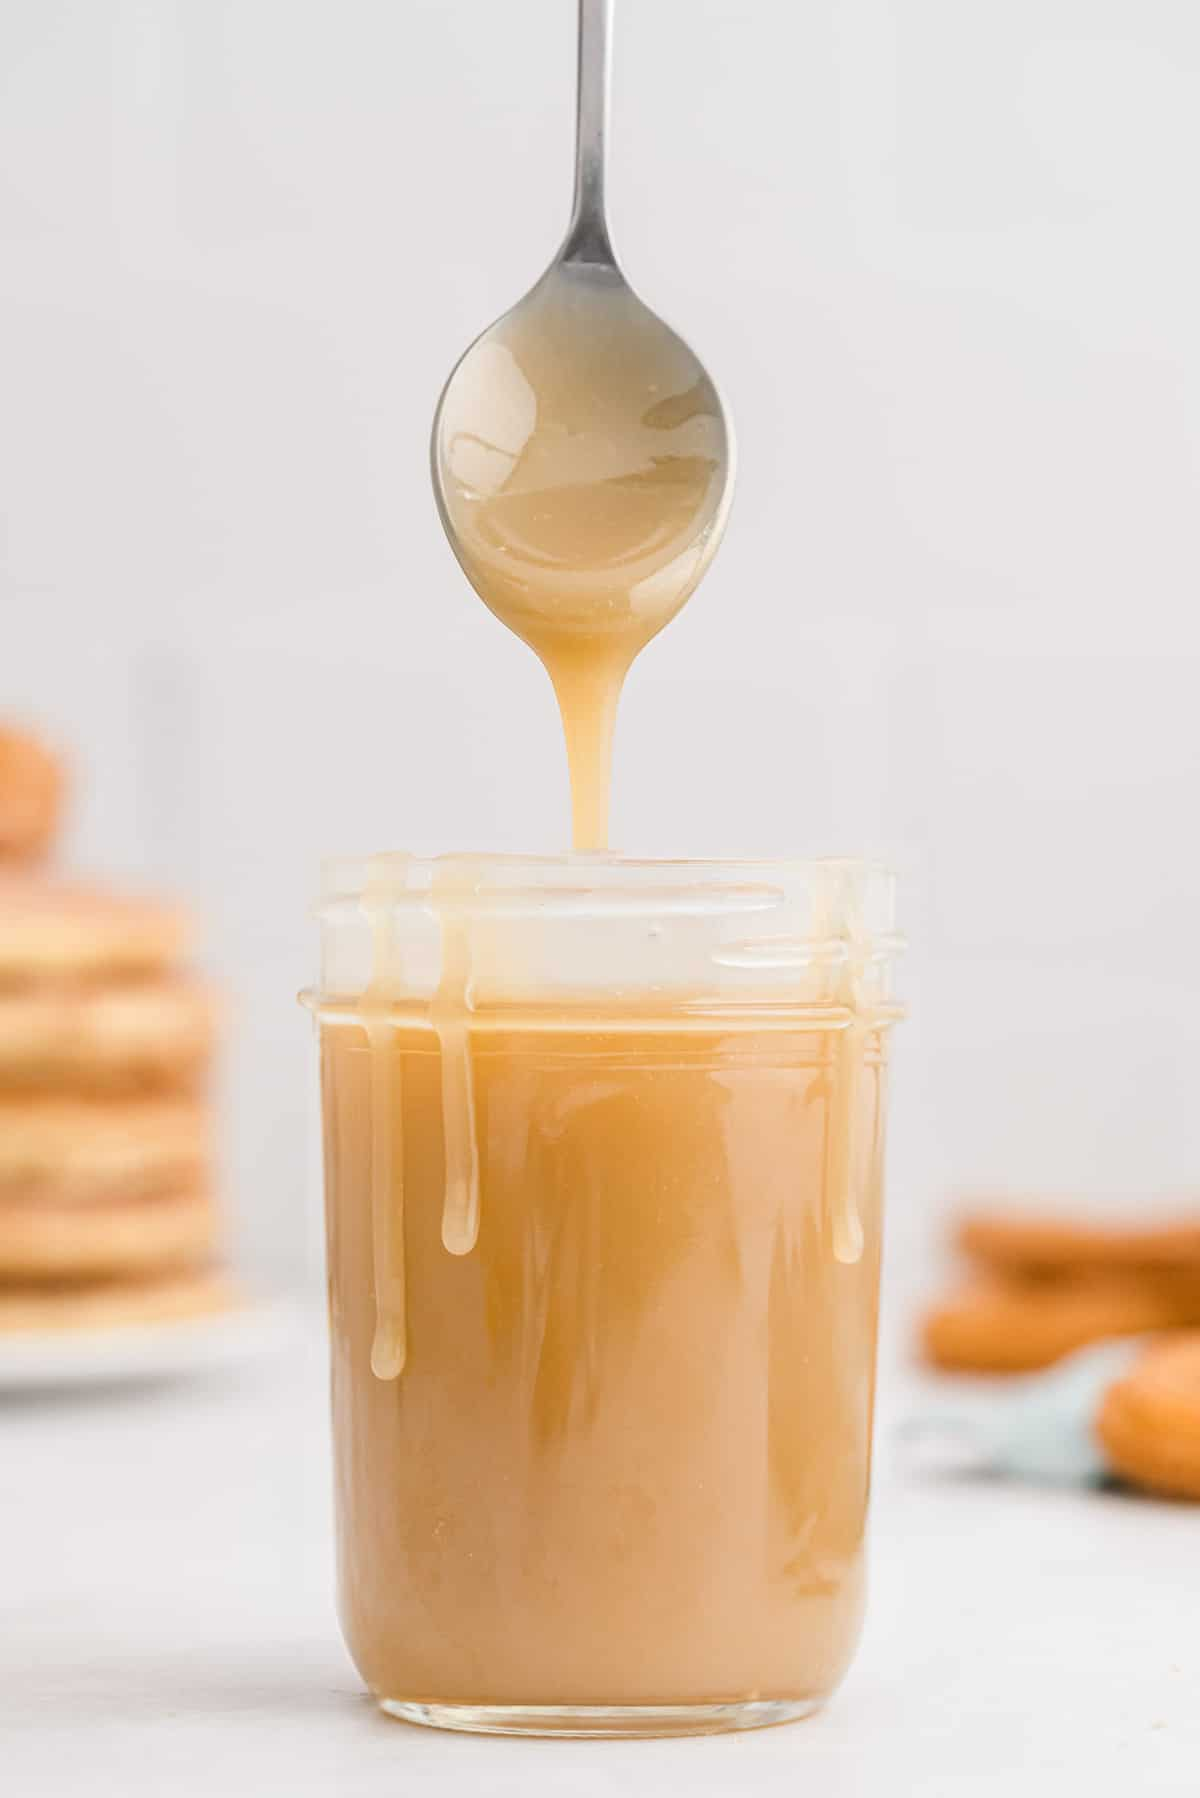 Caramel in a jar, dripping down sides of jar, a spoon hovering over.